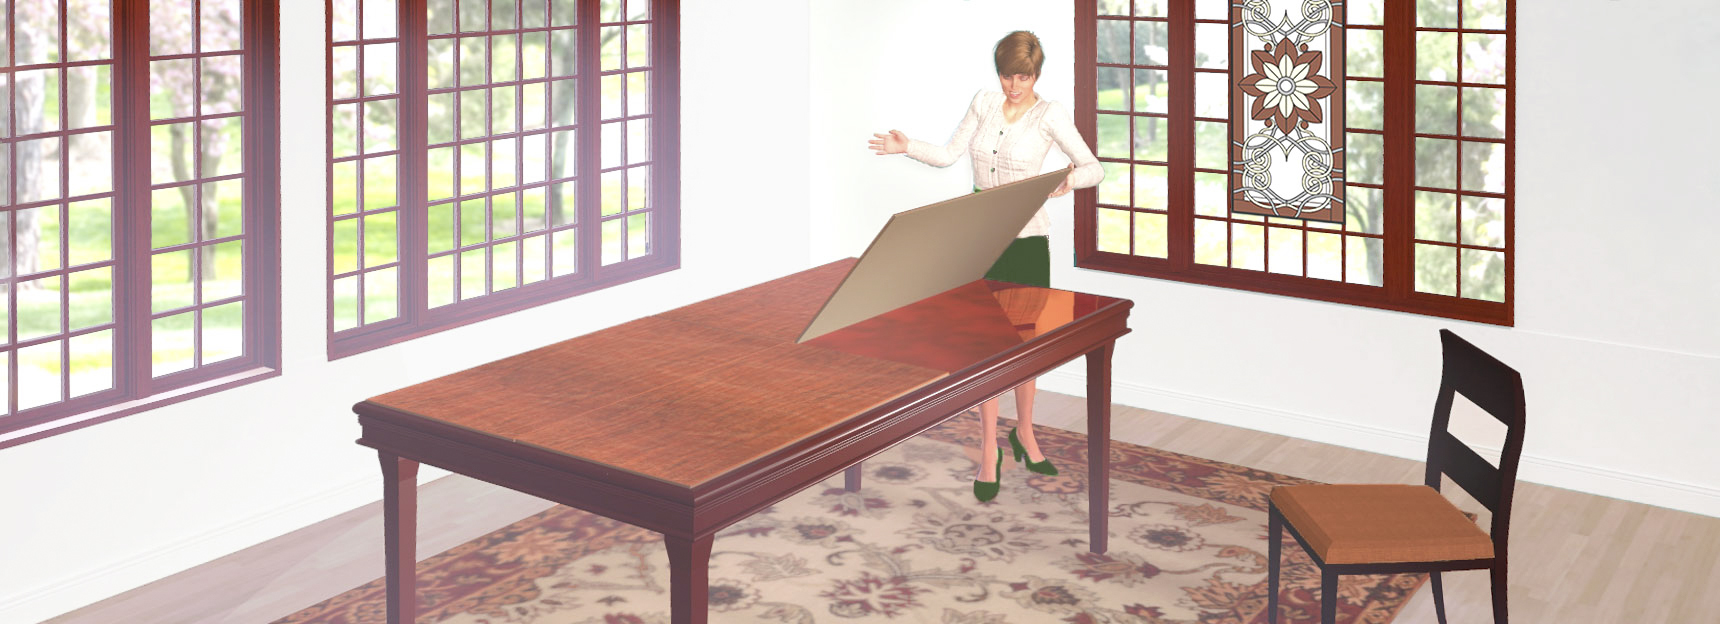 Superior Table Pad Co. Inc | Table Pads | Dining Table Covers ...